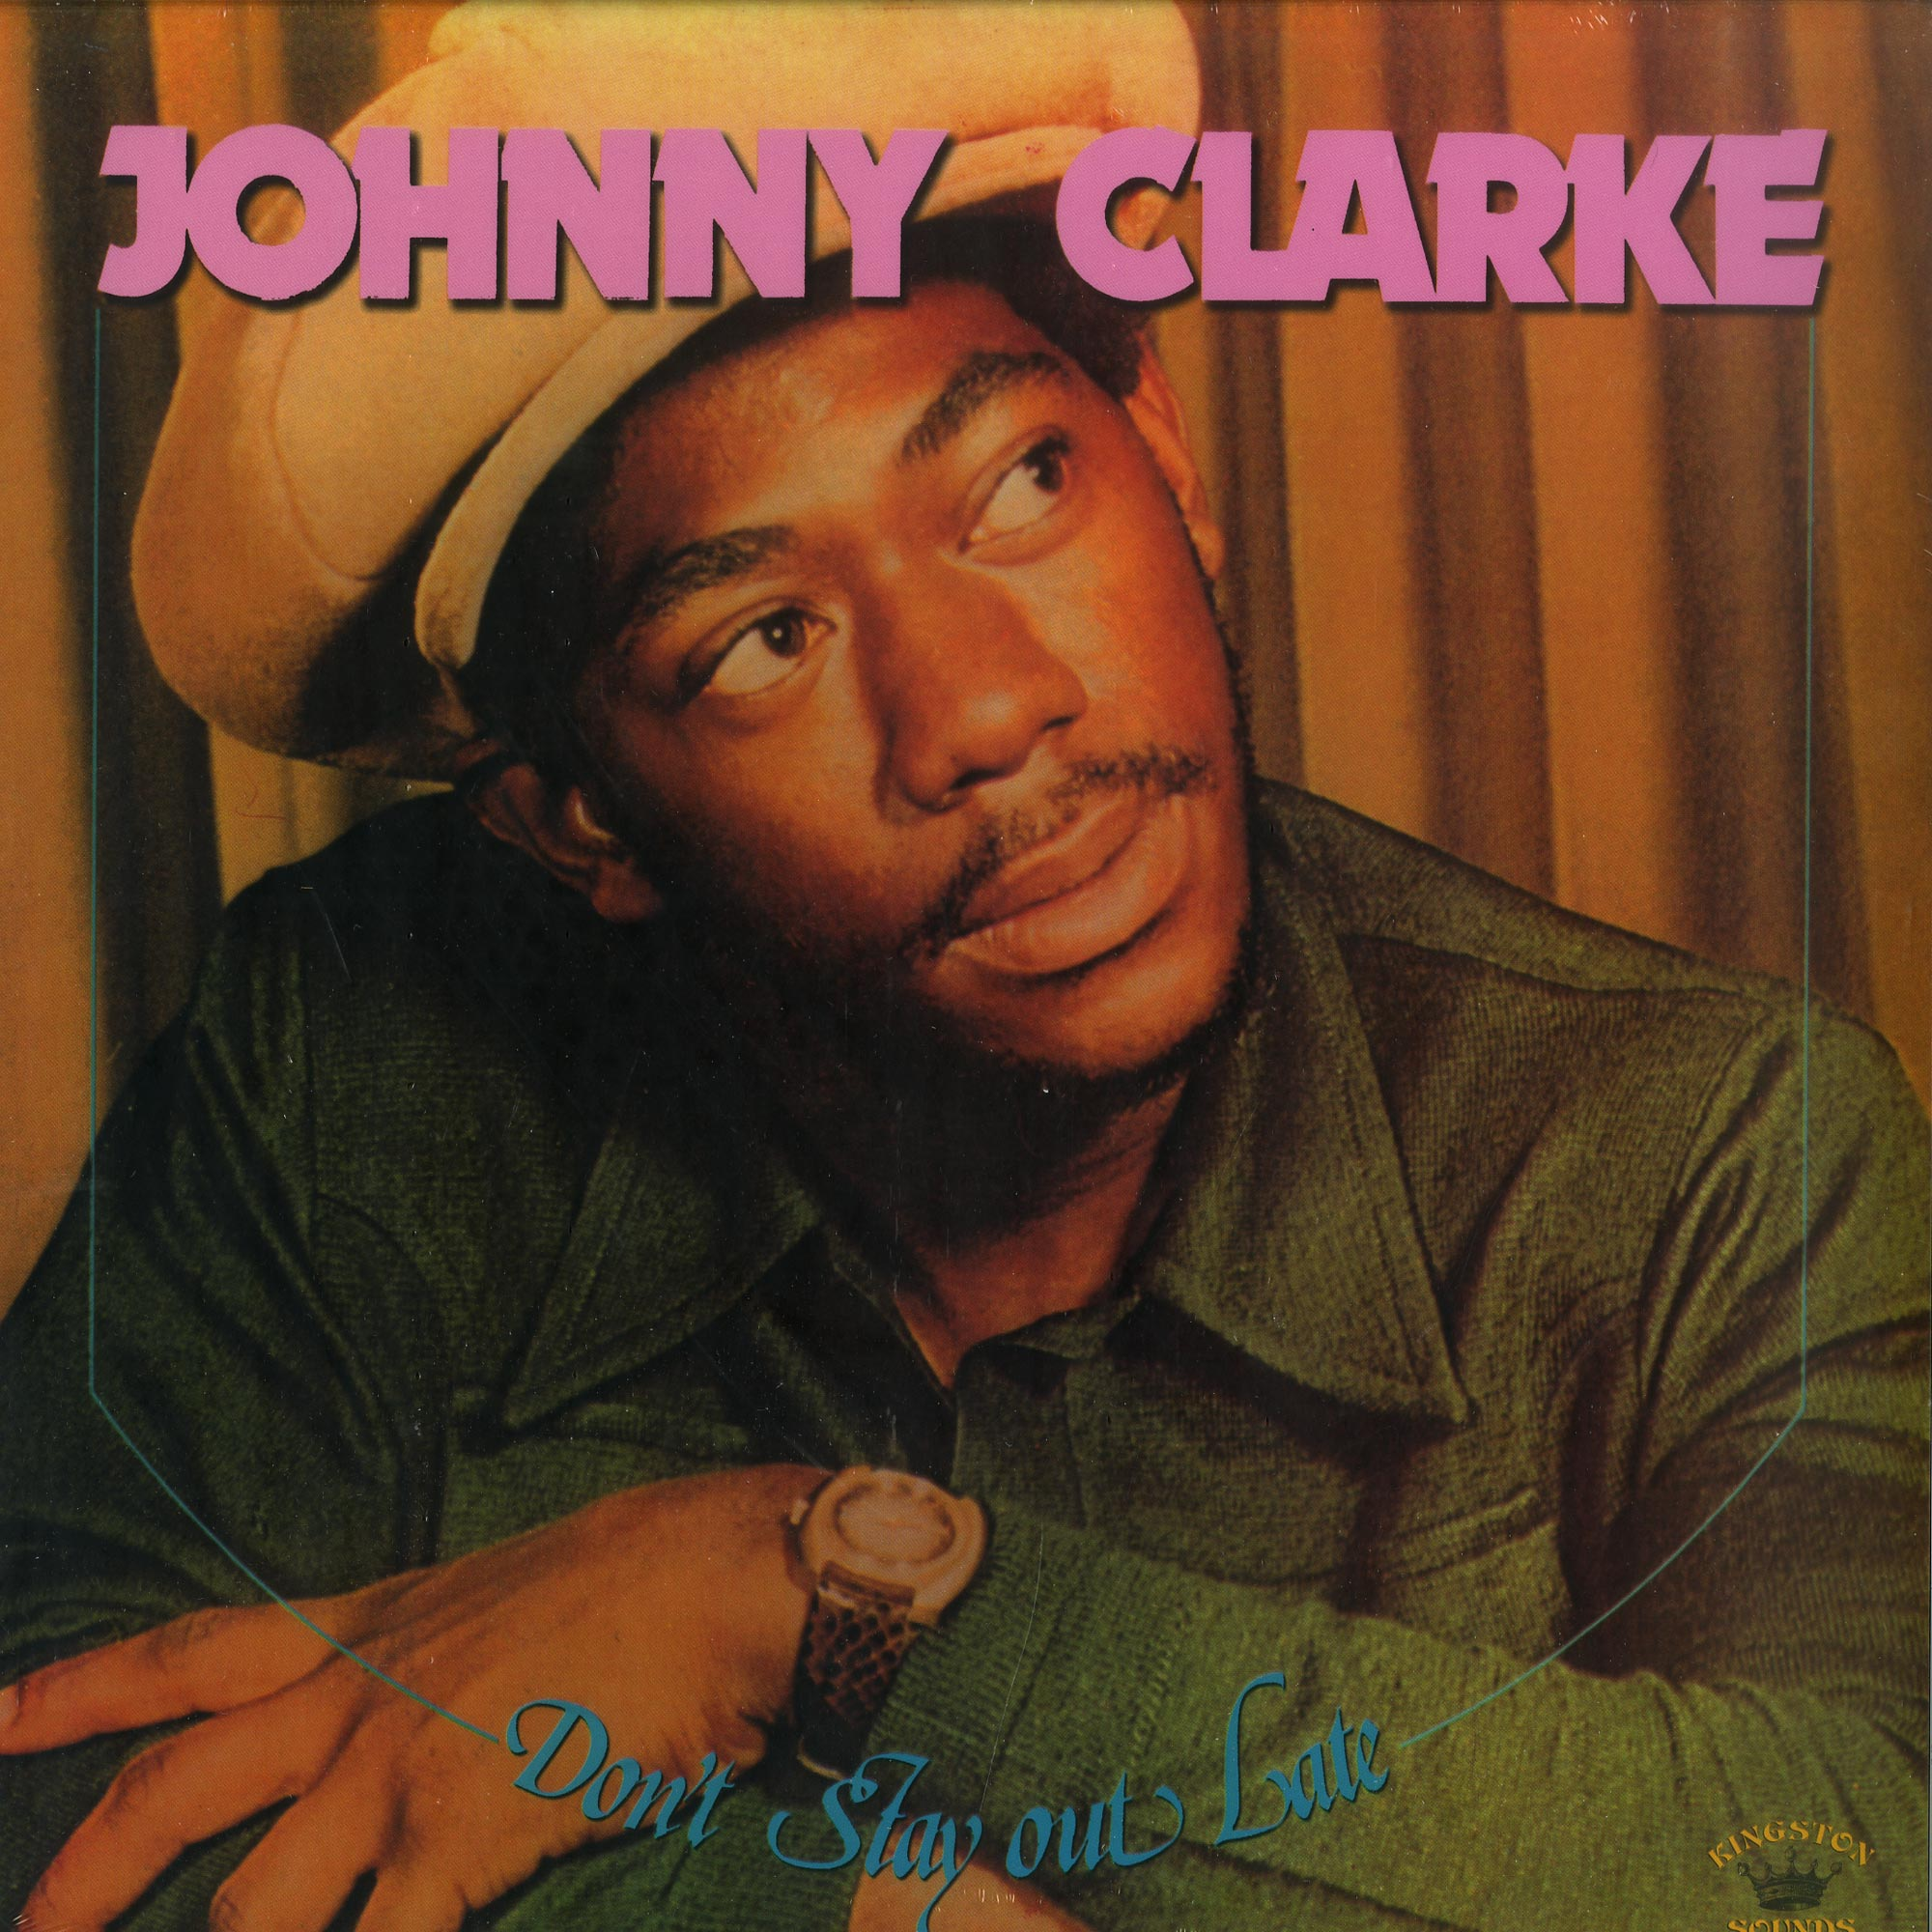 Johnny Clarke - DONT STAY OUT LATE